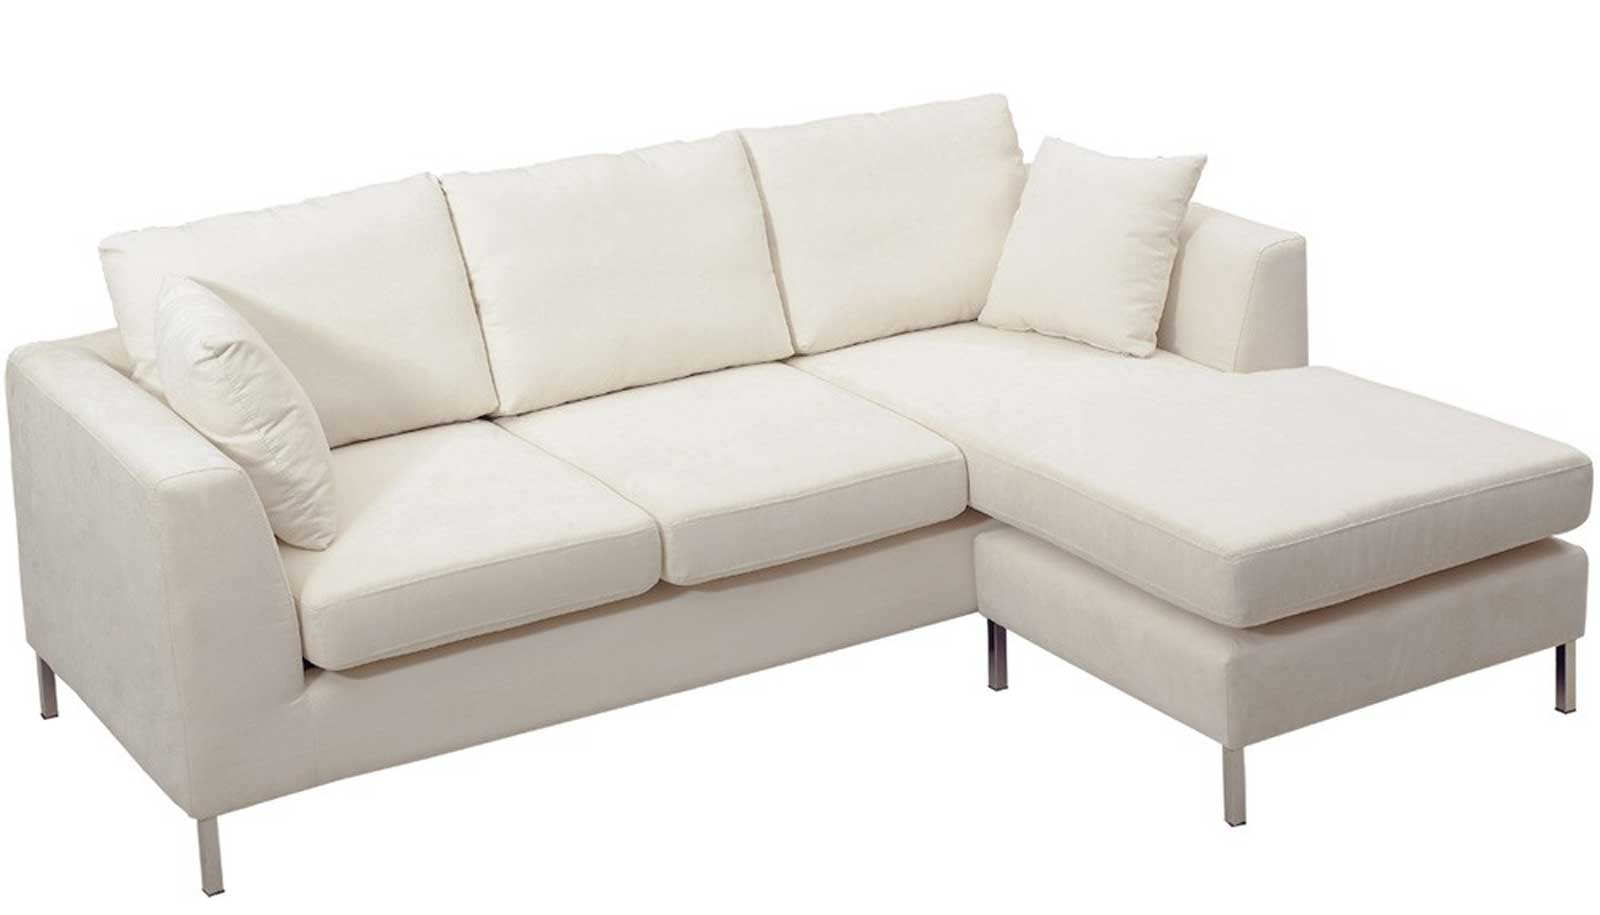 Clean White Microfiber Corner Sofa from Tosh Furniture